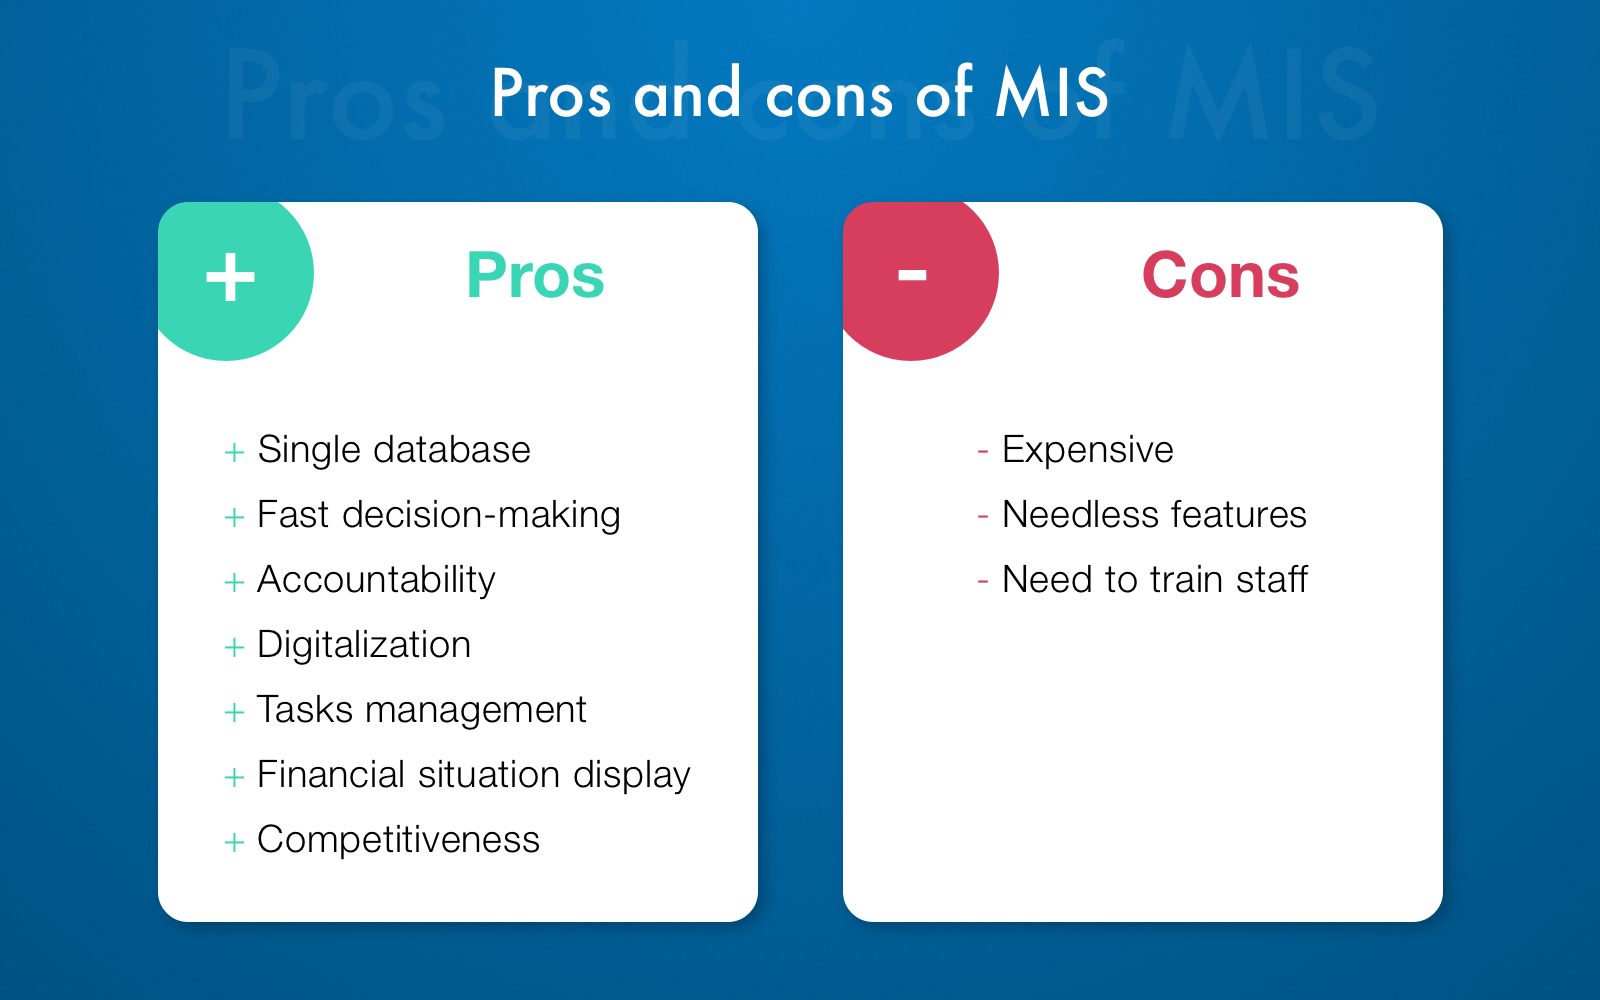 Advantages and disadvantages of using MIS